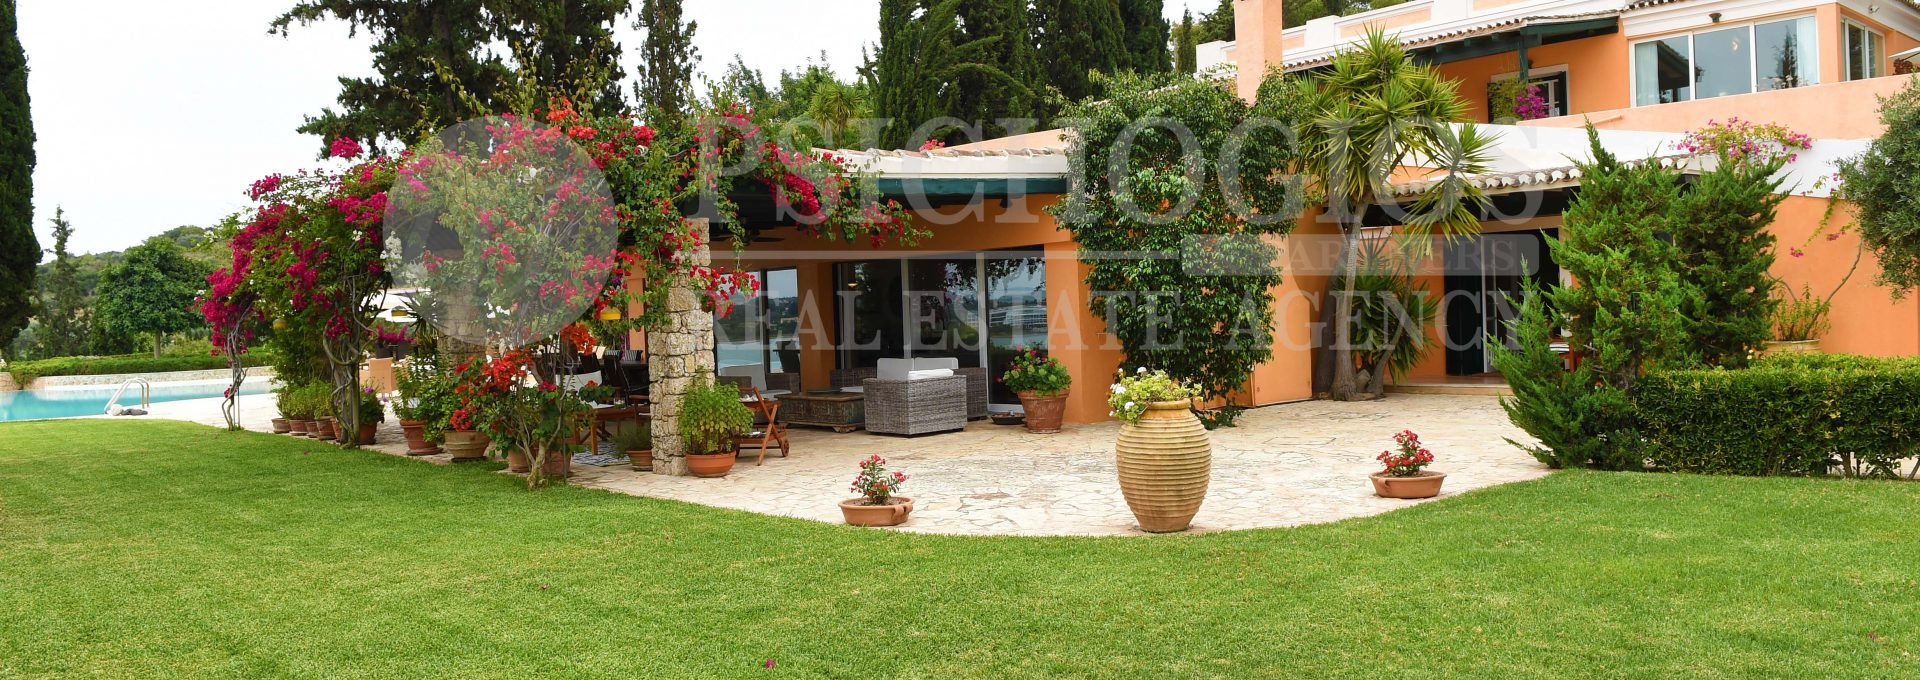 for_rent_house_600_square_meters_sea_view_porto_heli_greece (137)